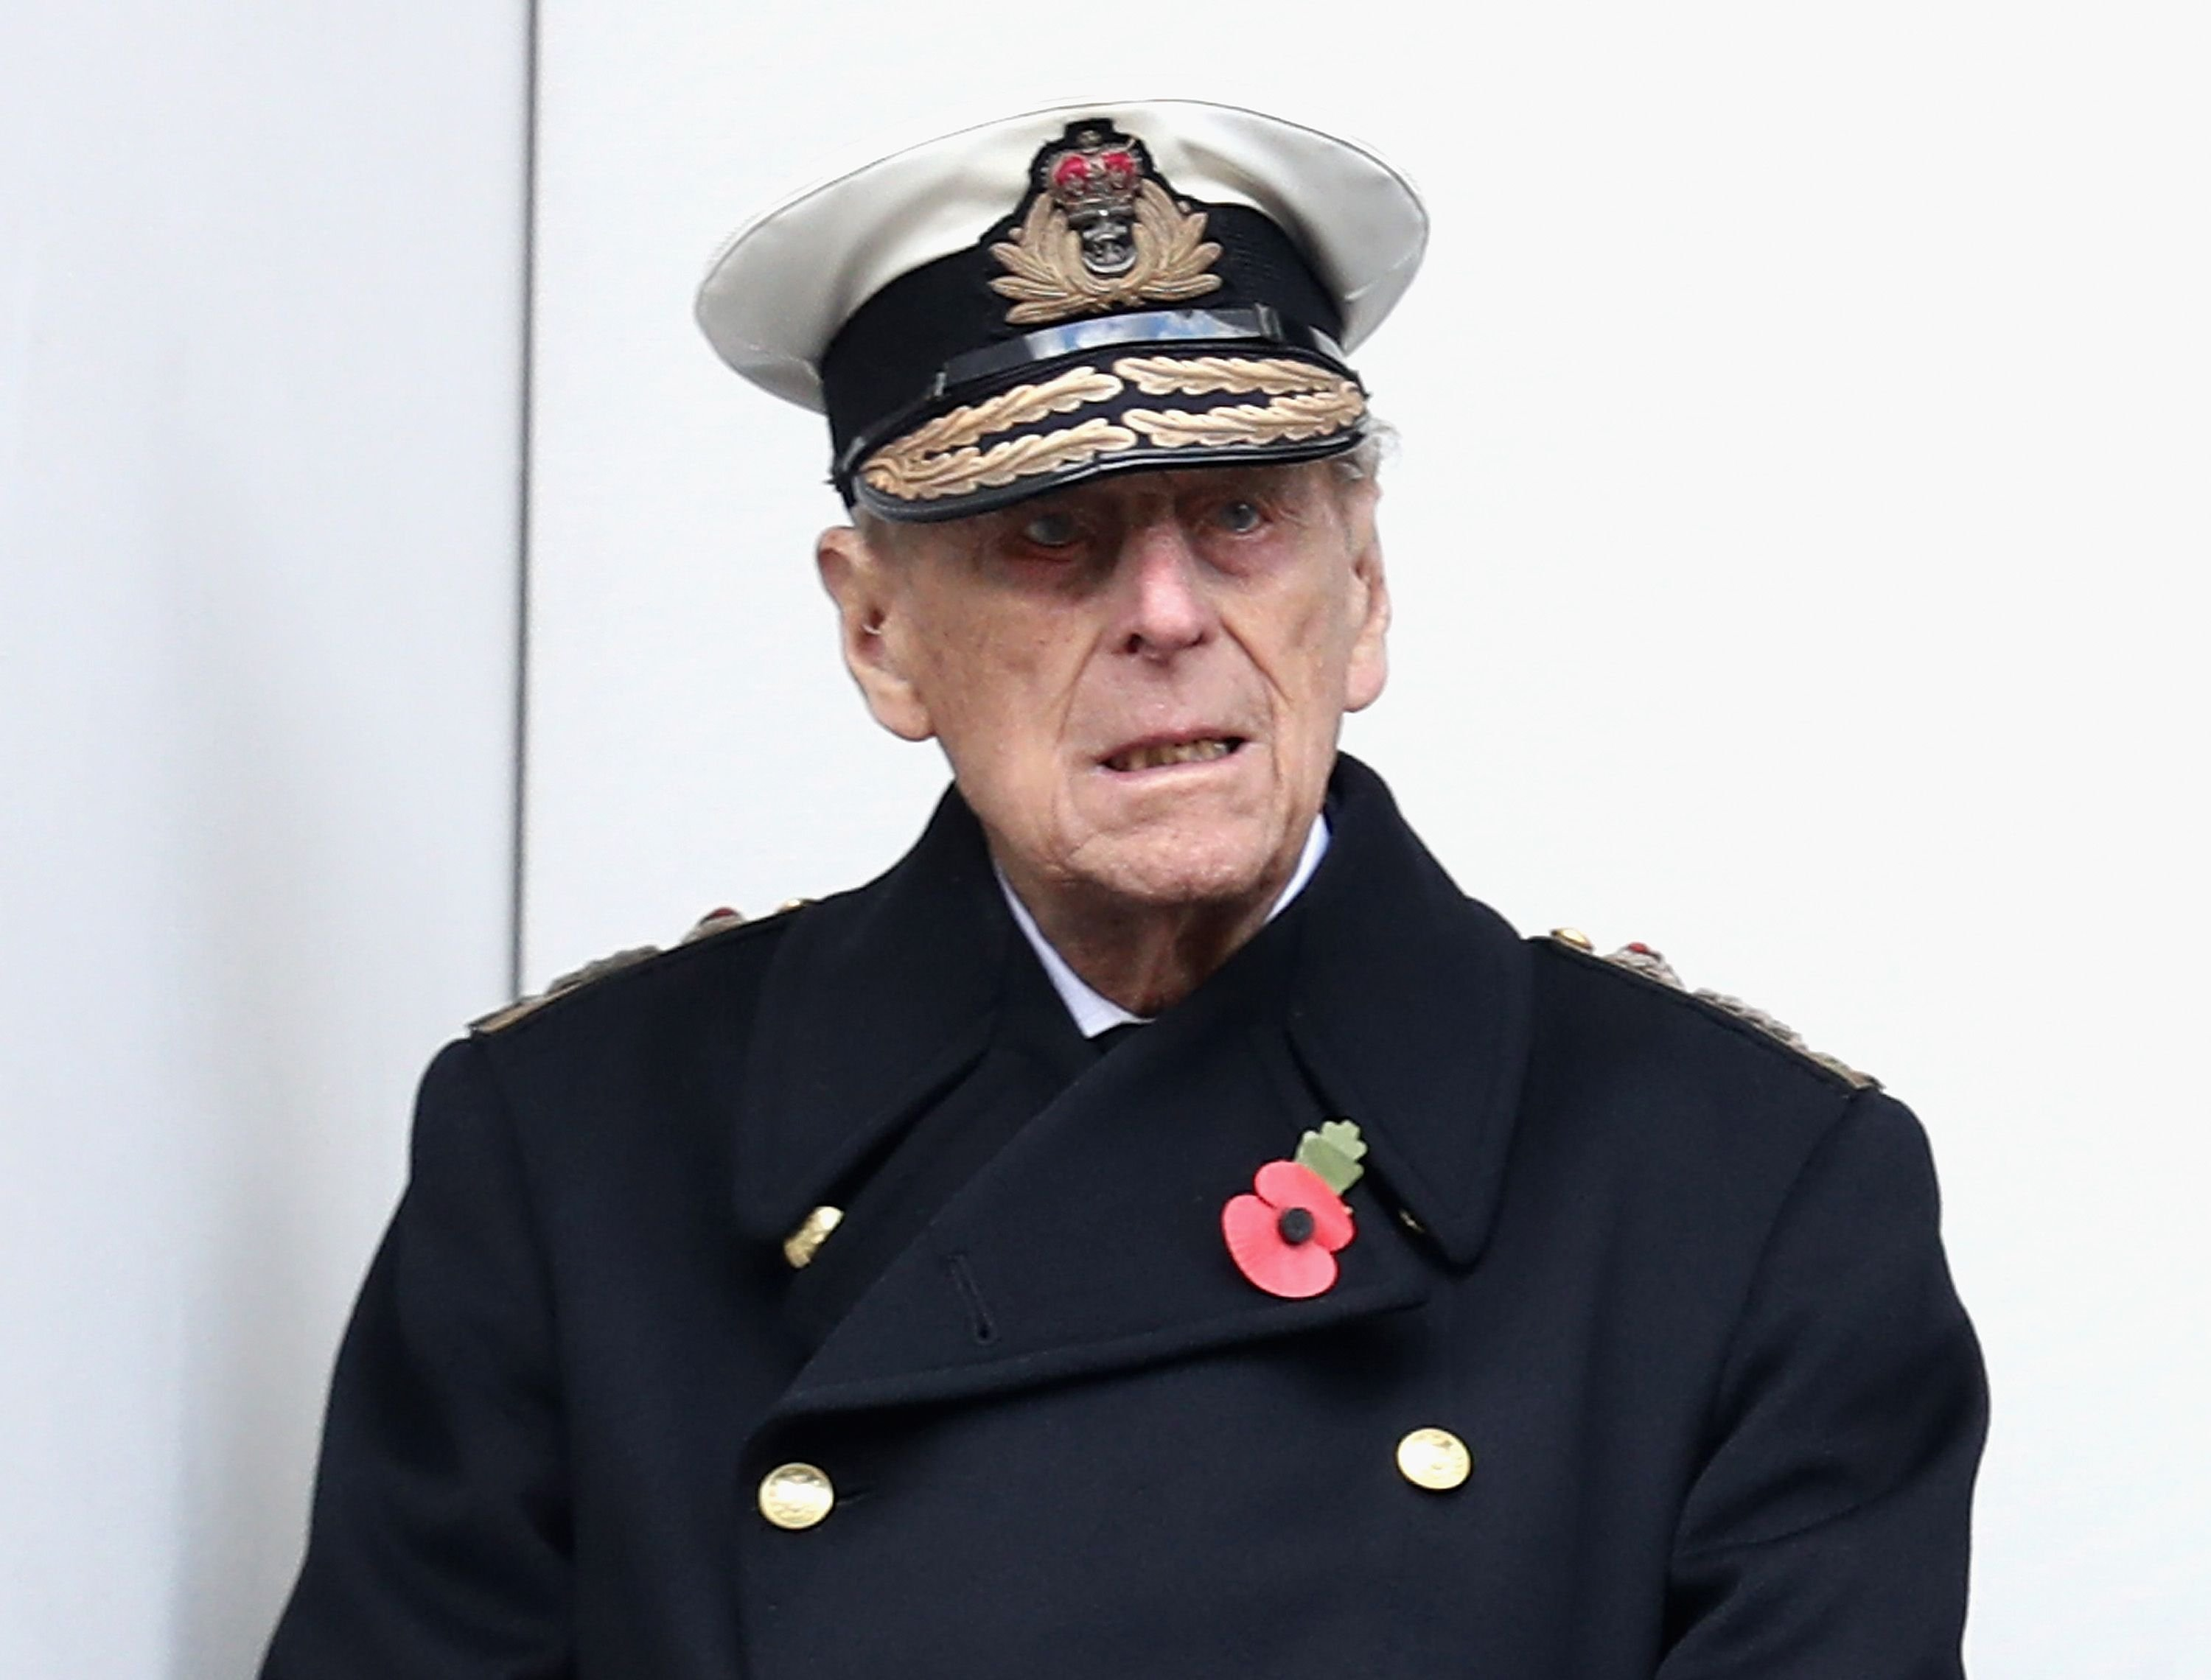 Prince Philip during the annual Remembrance Sunday memorial on November 12, 2017 | Getty Images